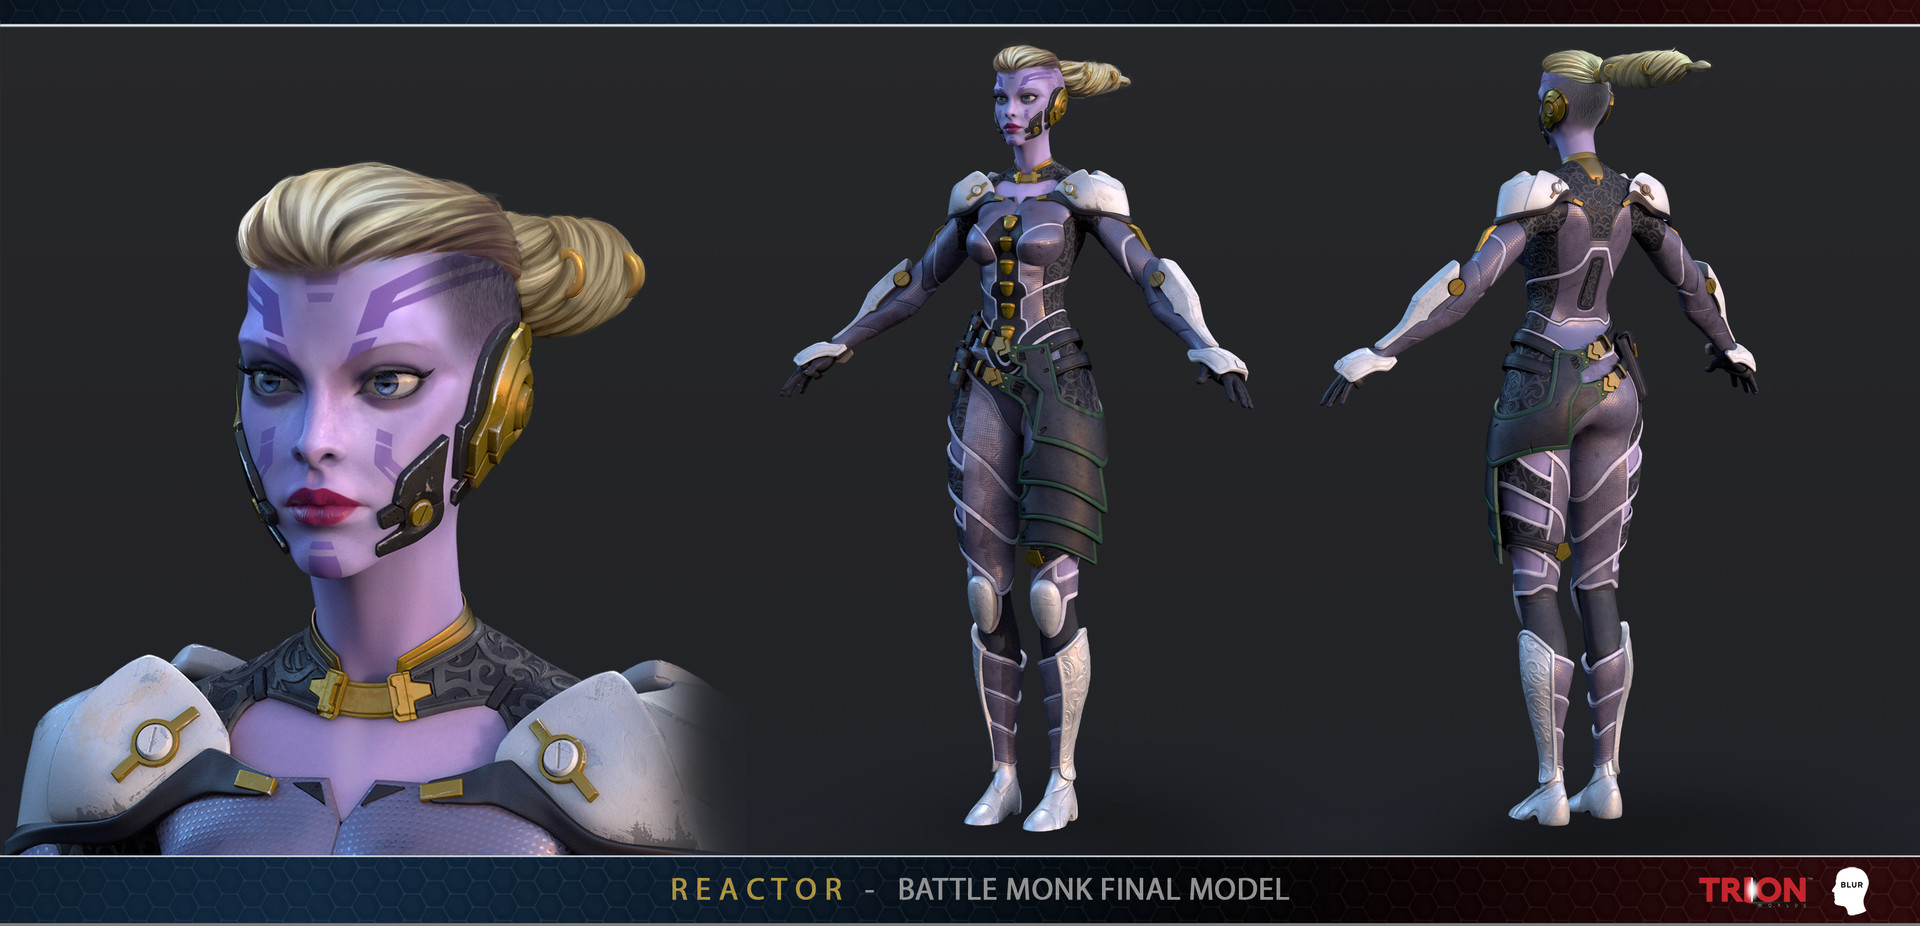 Hasan bajramovic blur reactor battlemonk model